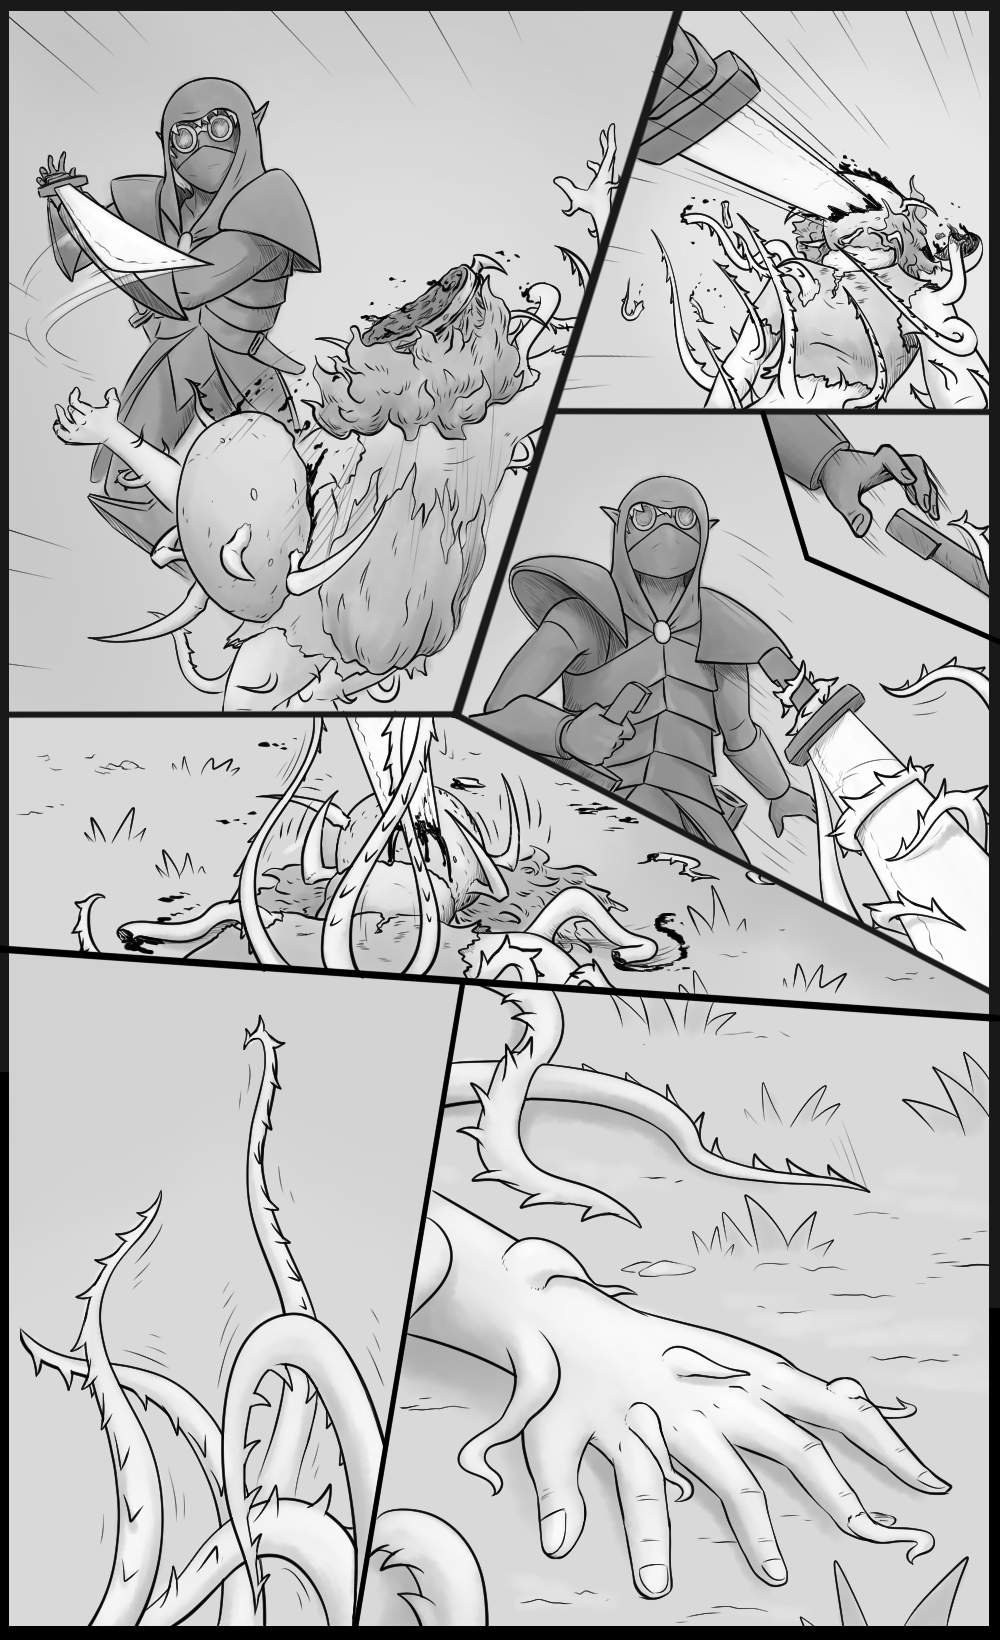 Page 32 - The creature attacks (Part 3)